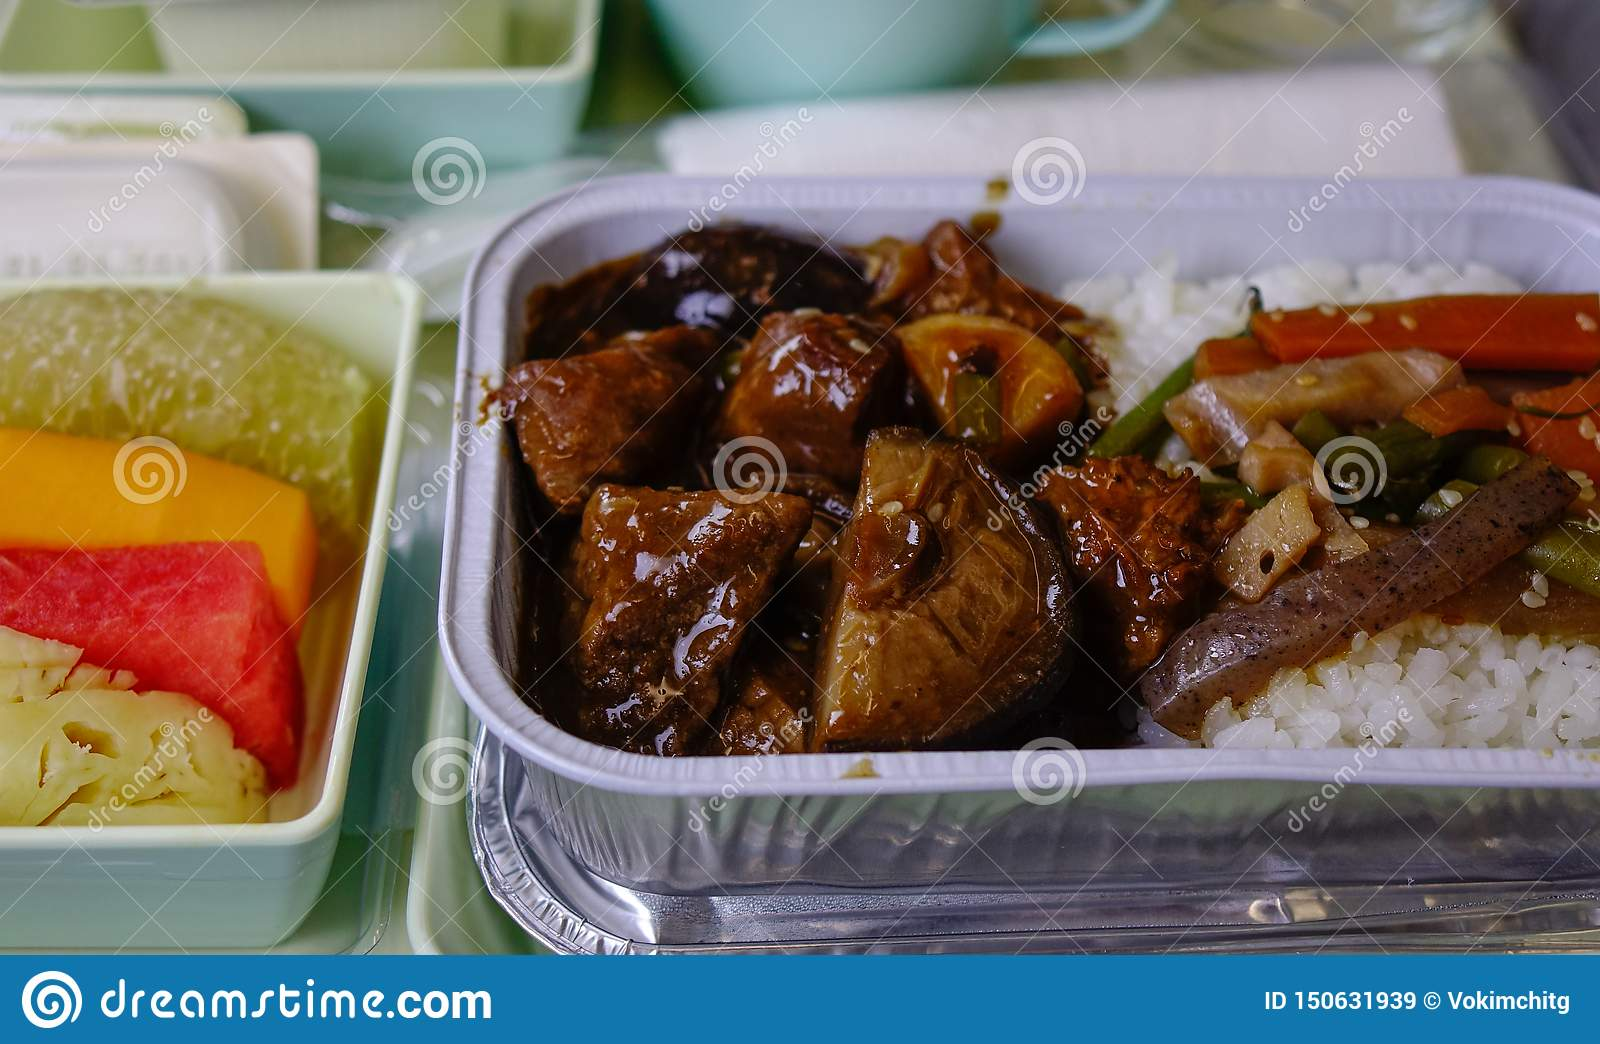 Food served on board of economy class